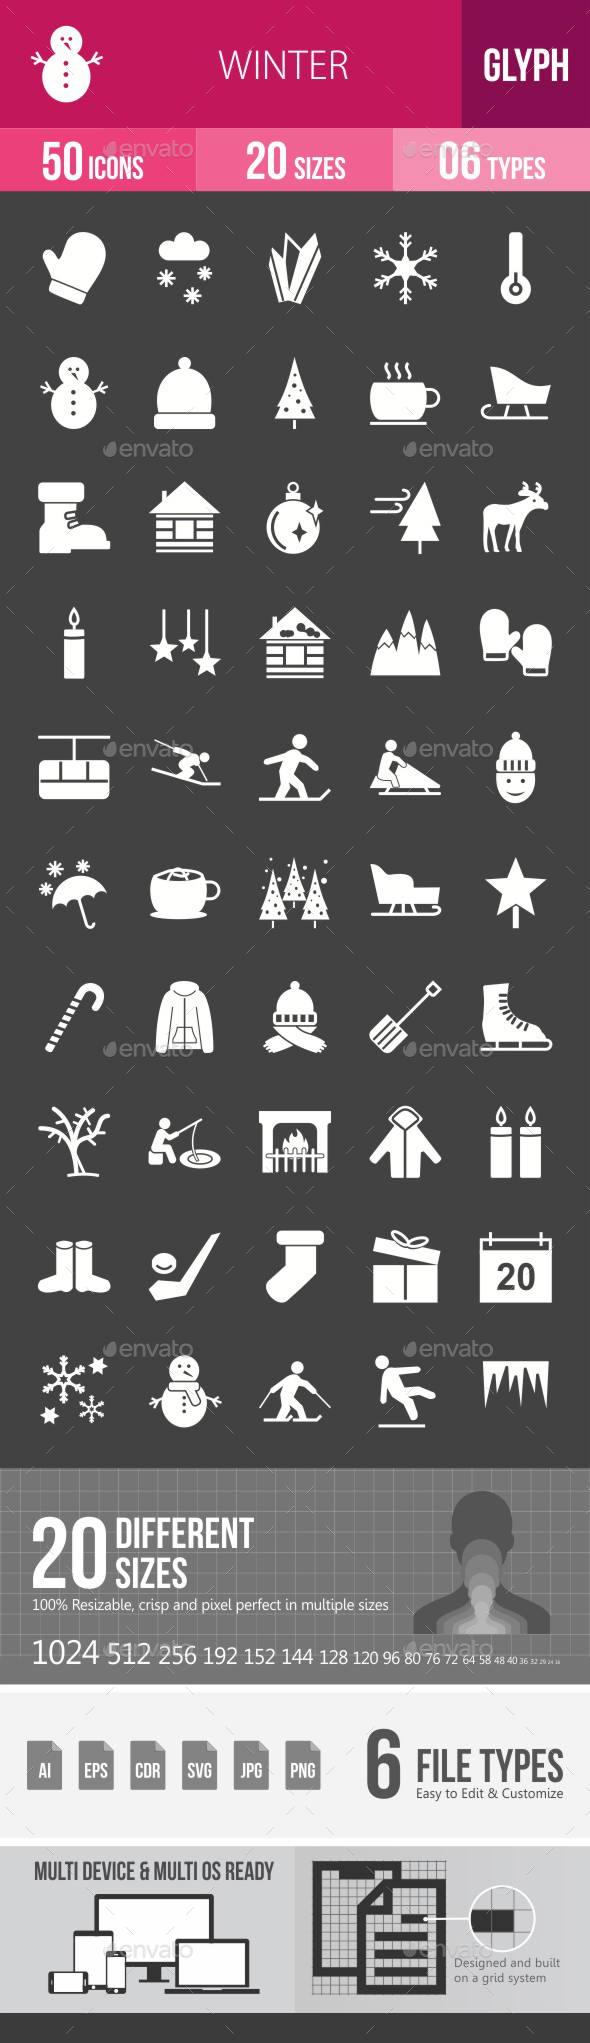 Winter Glyph Inverted Icons - Icons